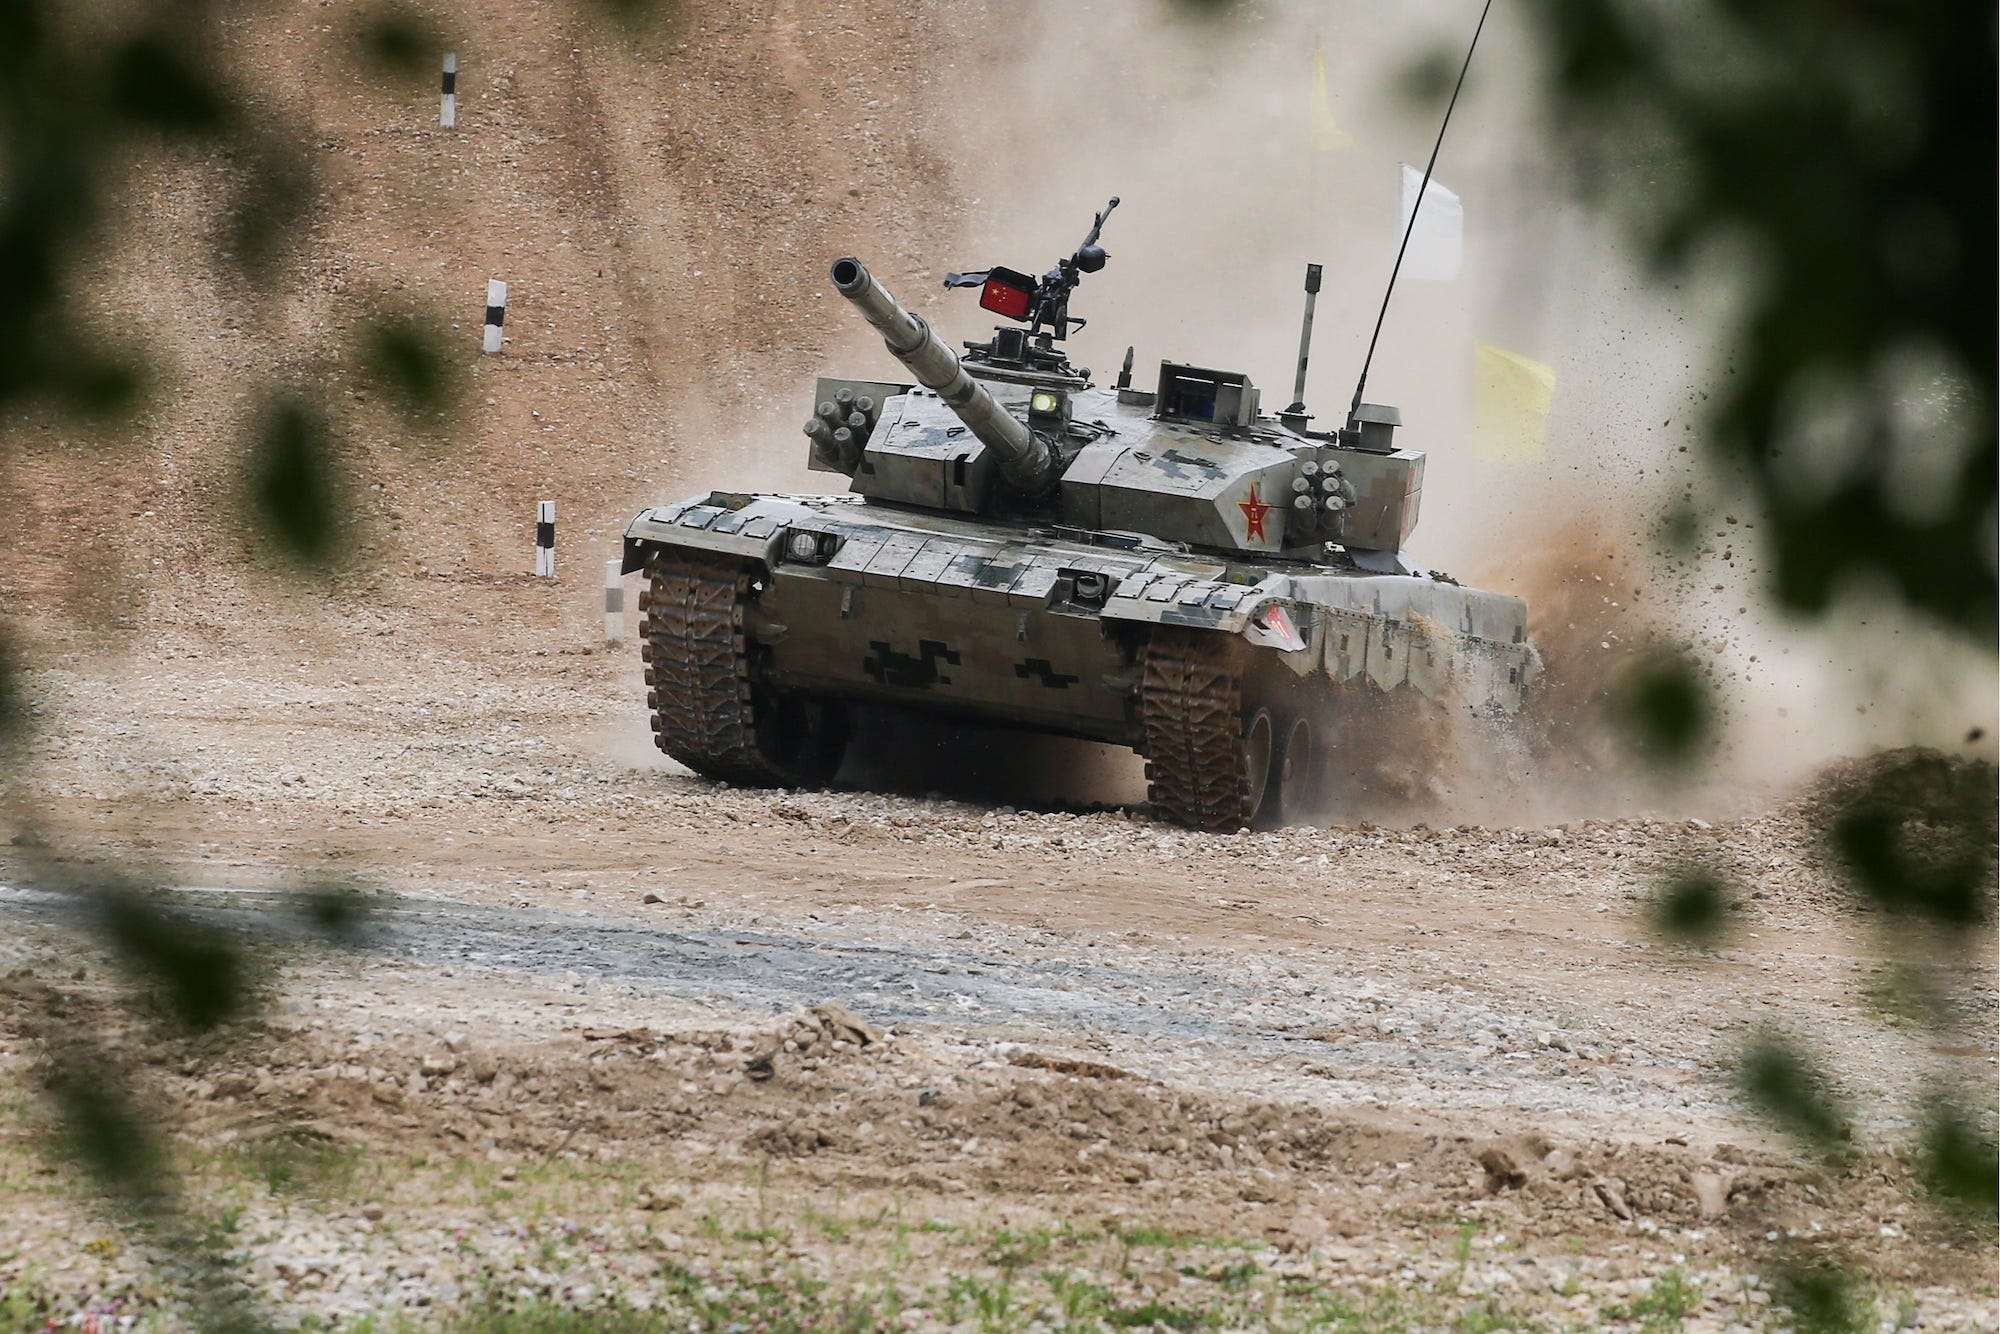 Photos of tanks and armored vehicles in the Himalayas show that China and India's next border showdown could be much deadlier